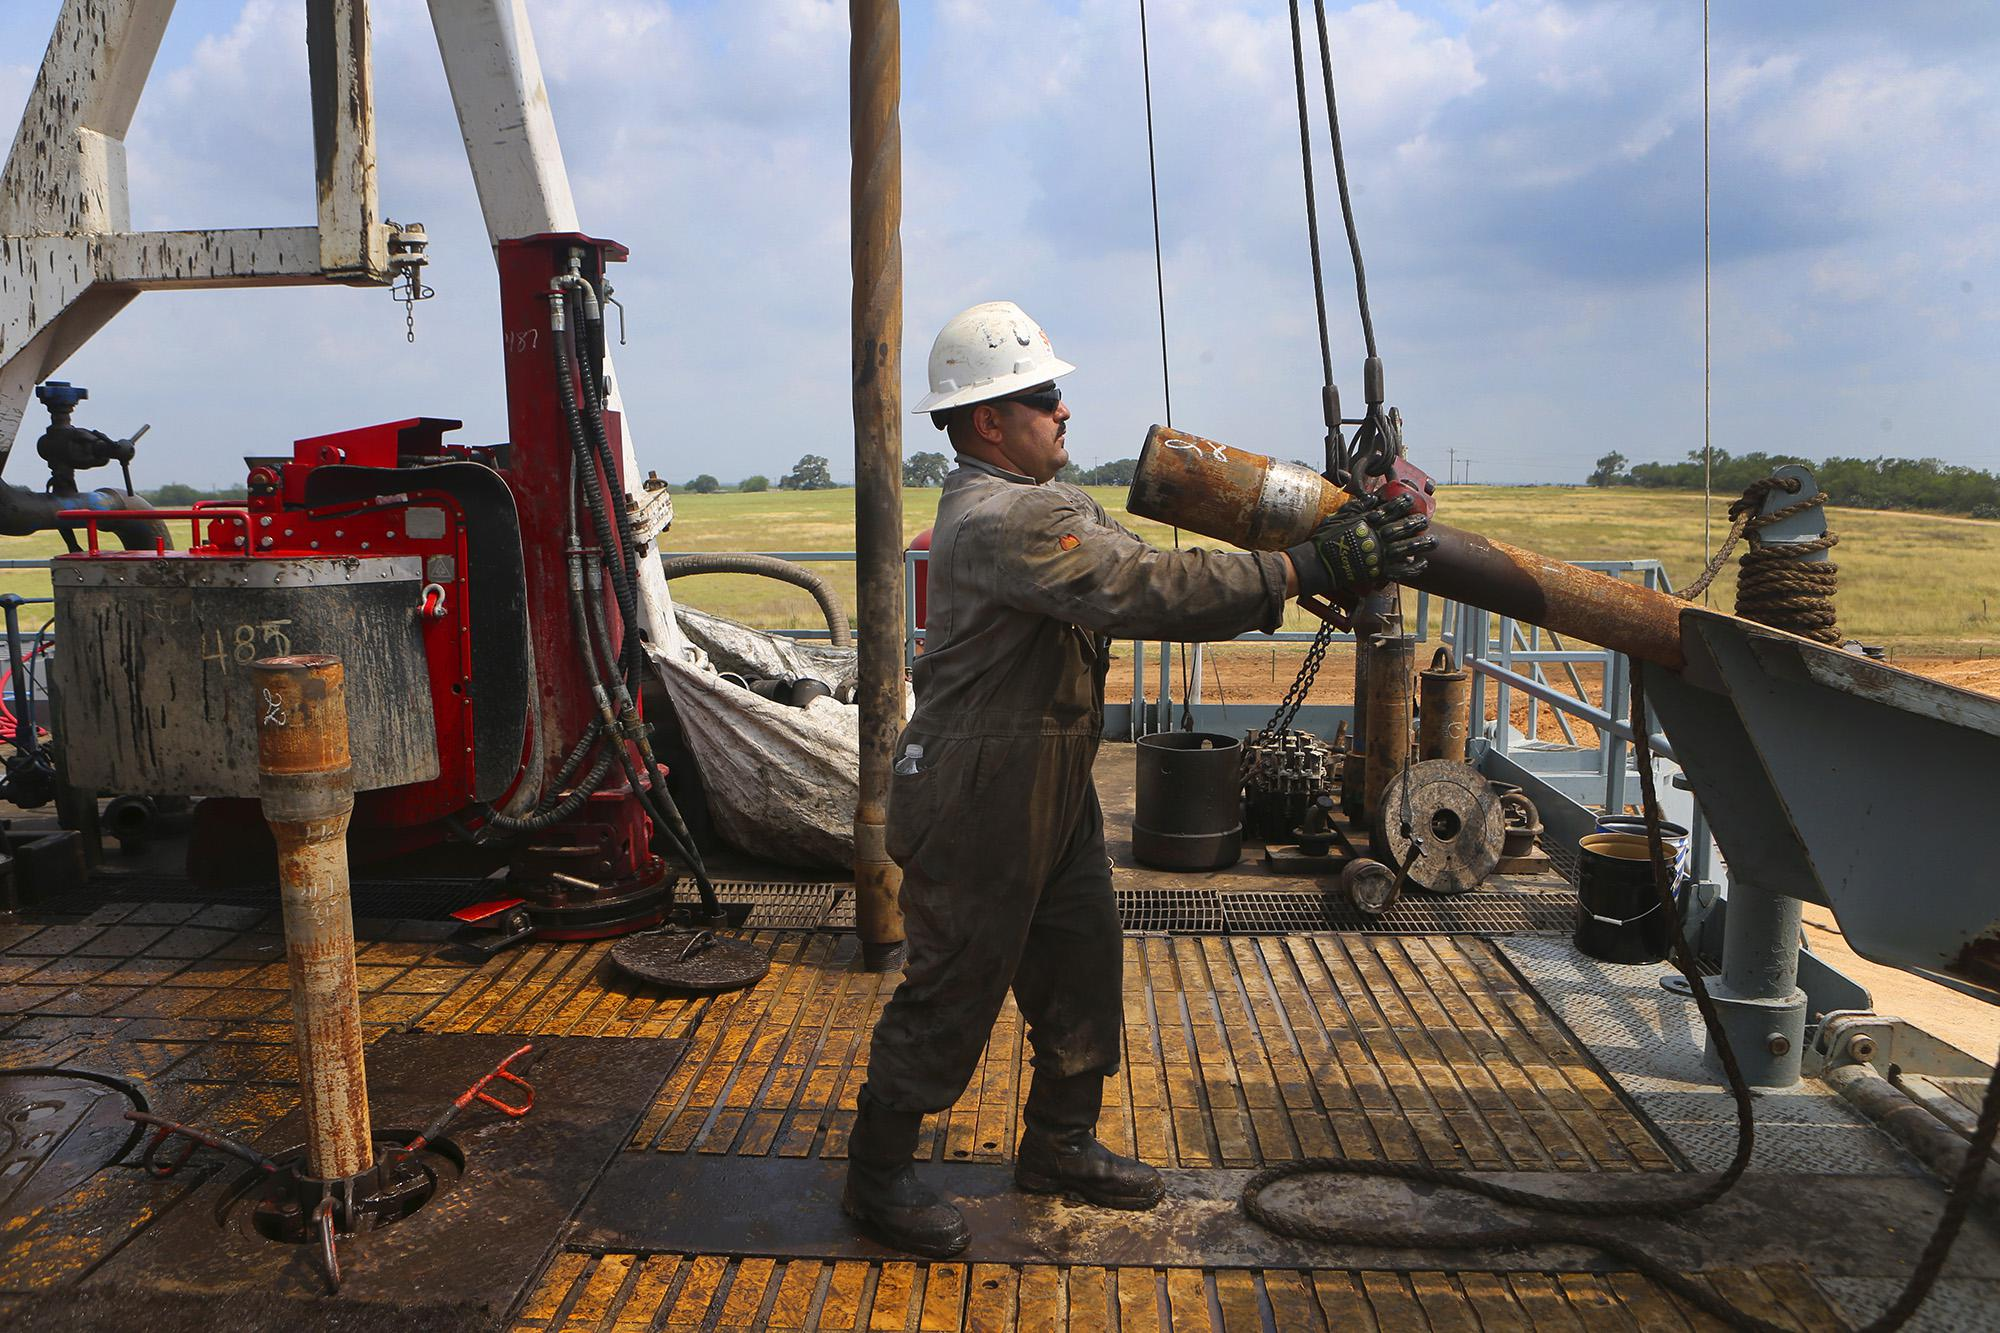 U.S. shale slowing quickly, will plateau in 2021: Report